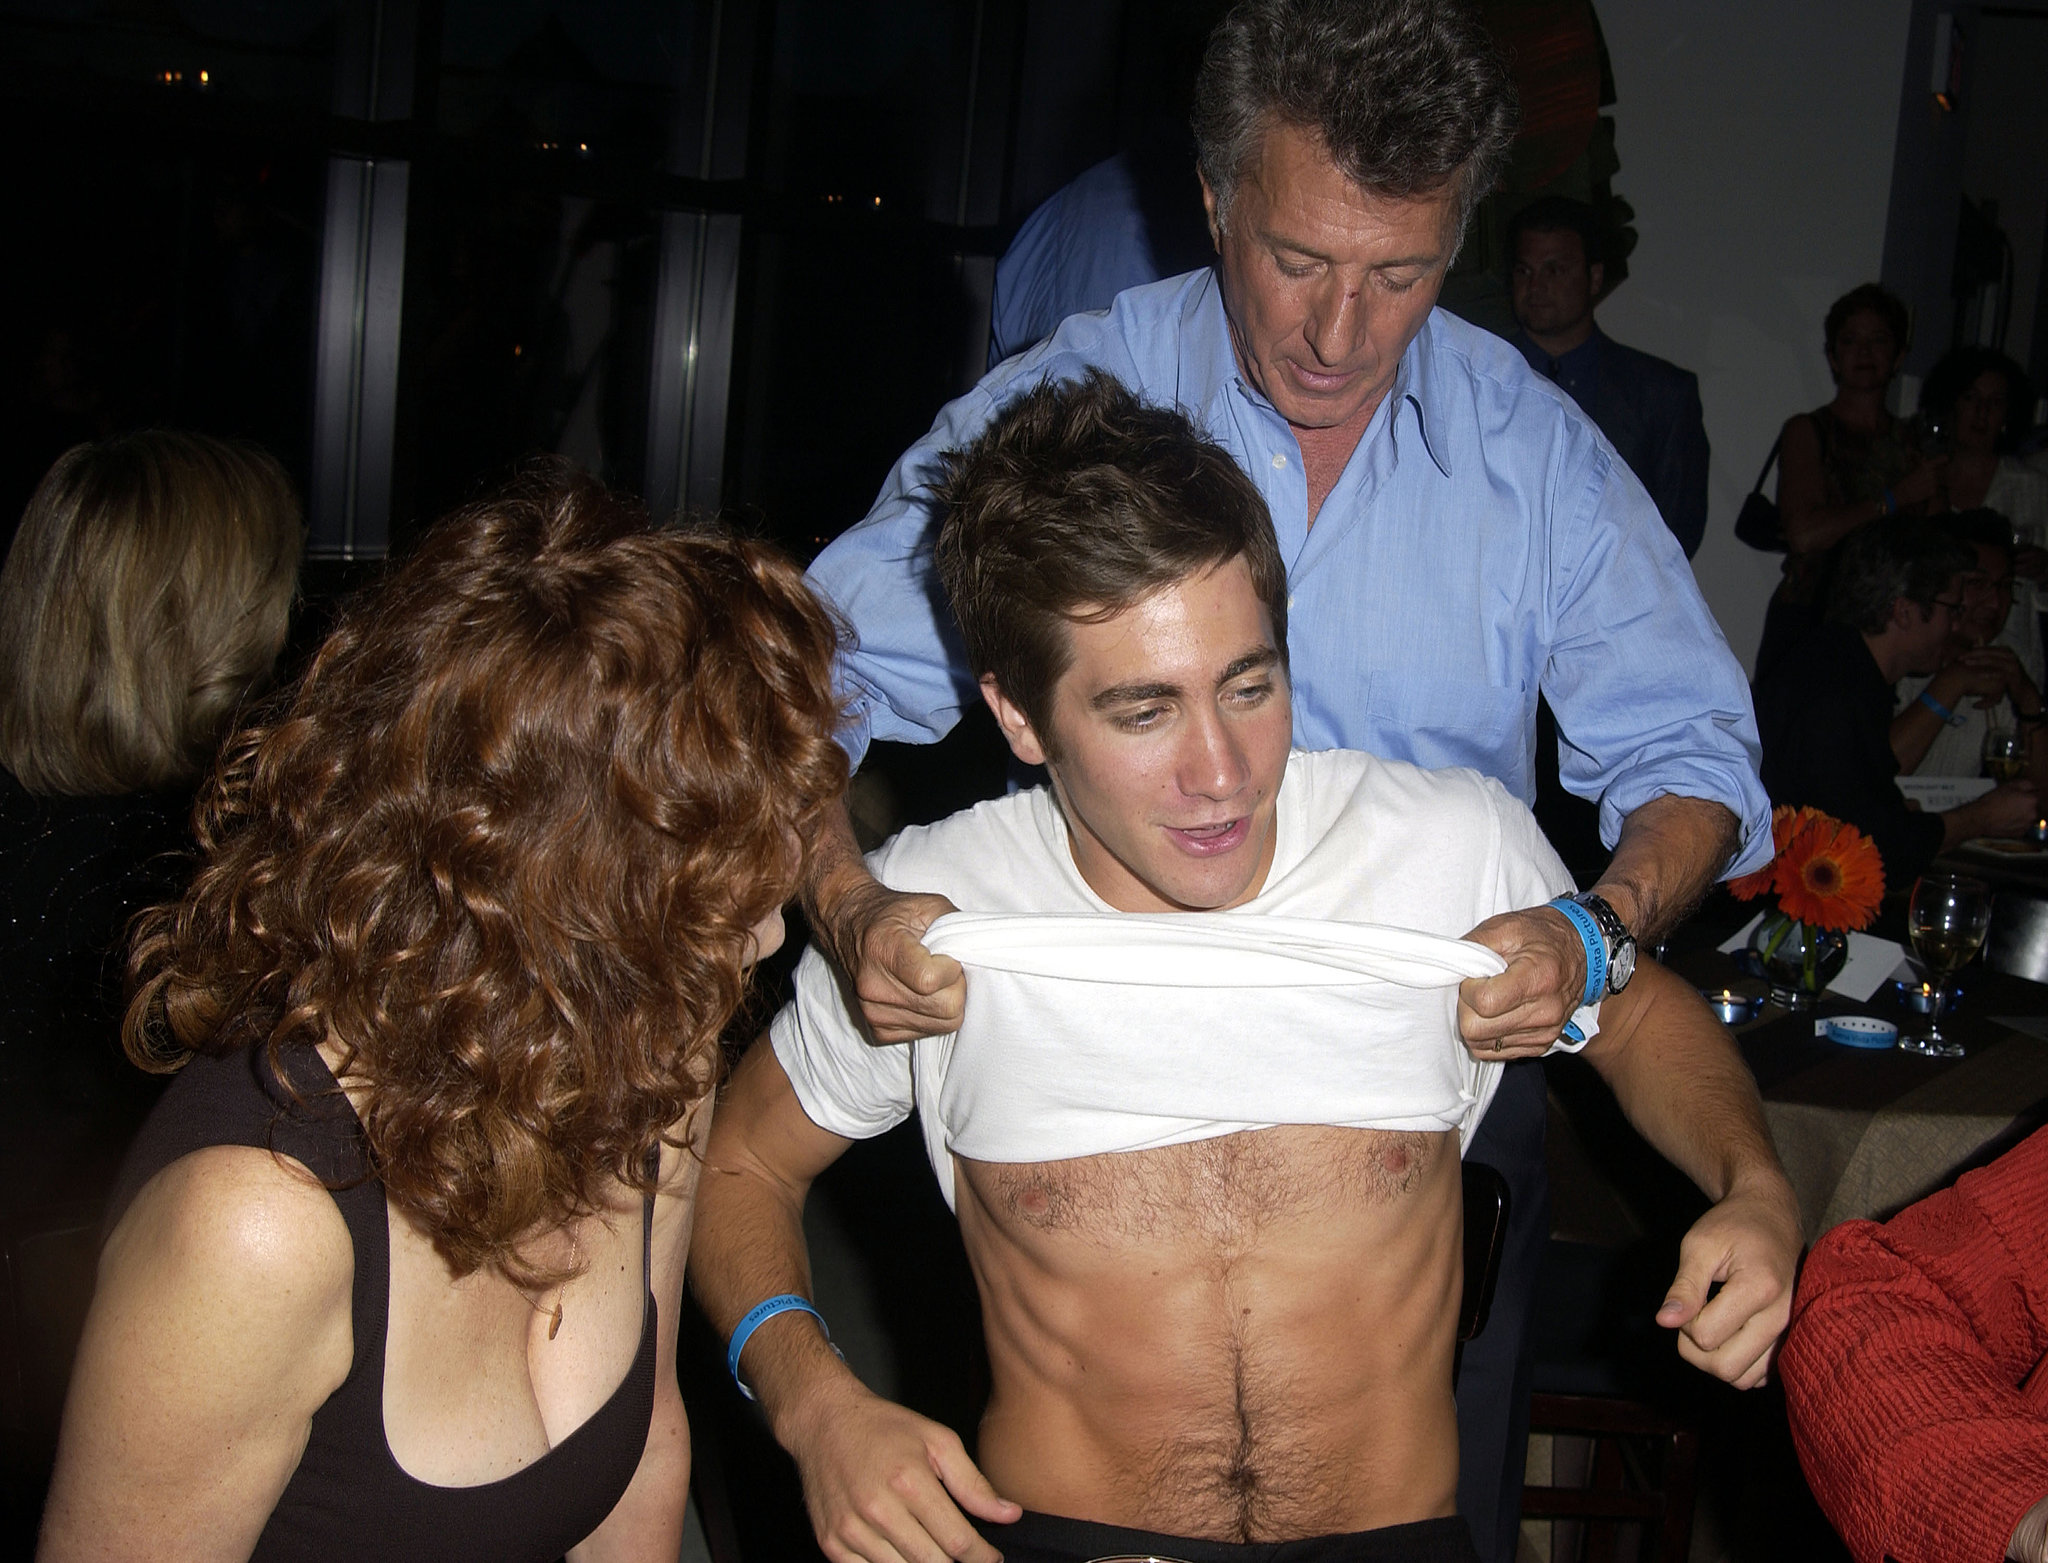 Susan Sarandon and Dustin Hoffman wanted to see more of Jake's six-pack at the Toronto Film Festival in September 2002 — we don't blame them!